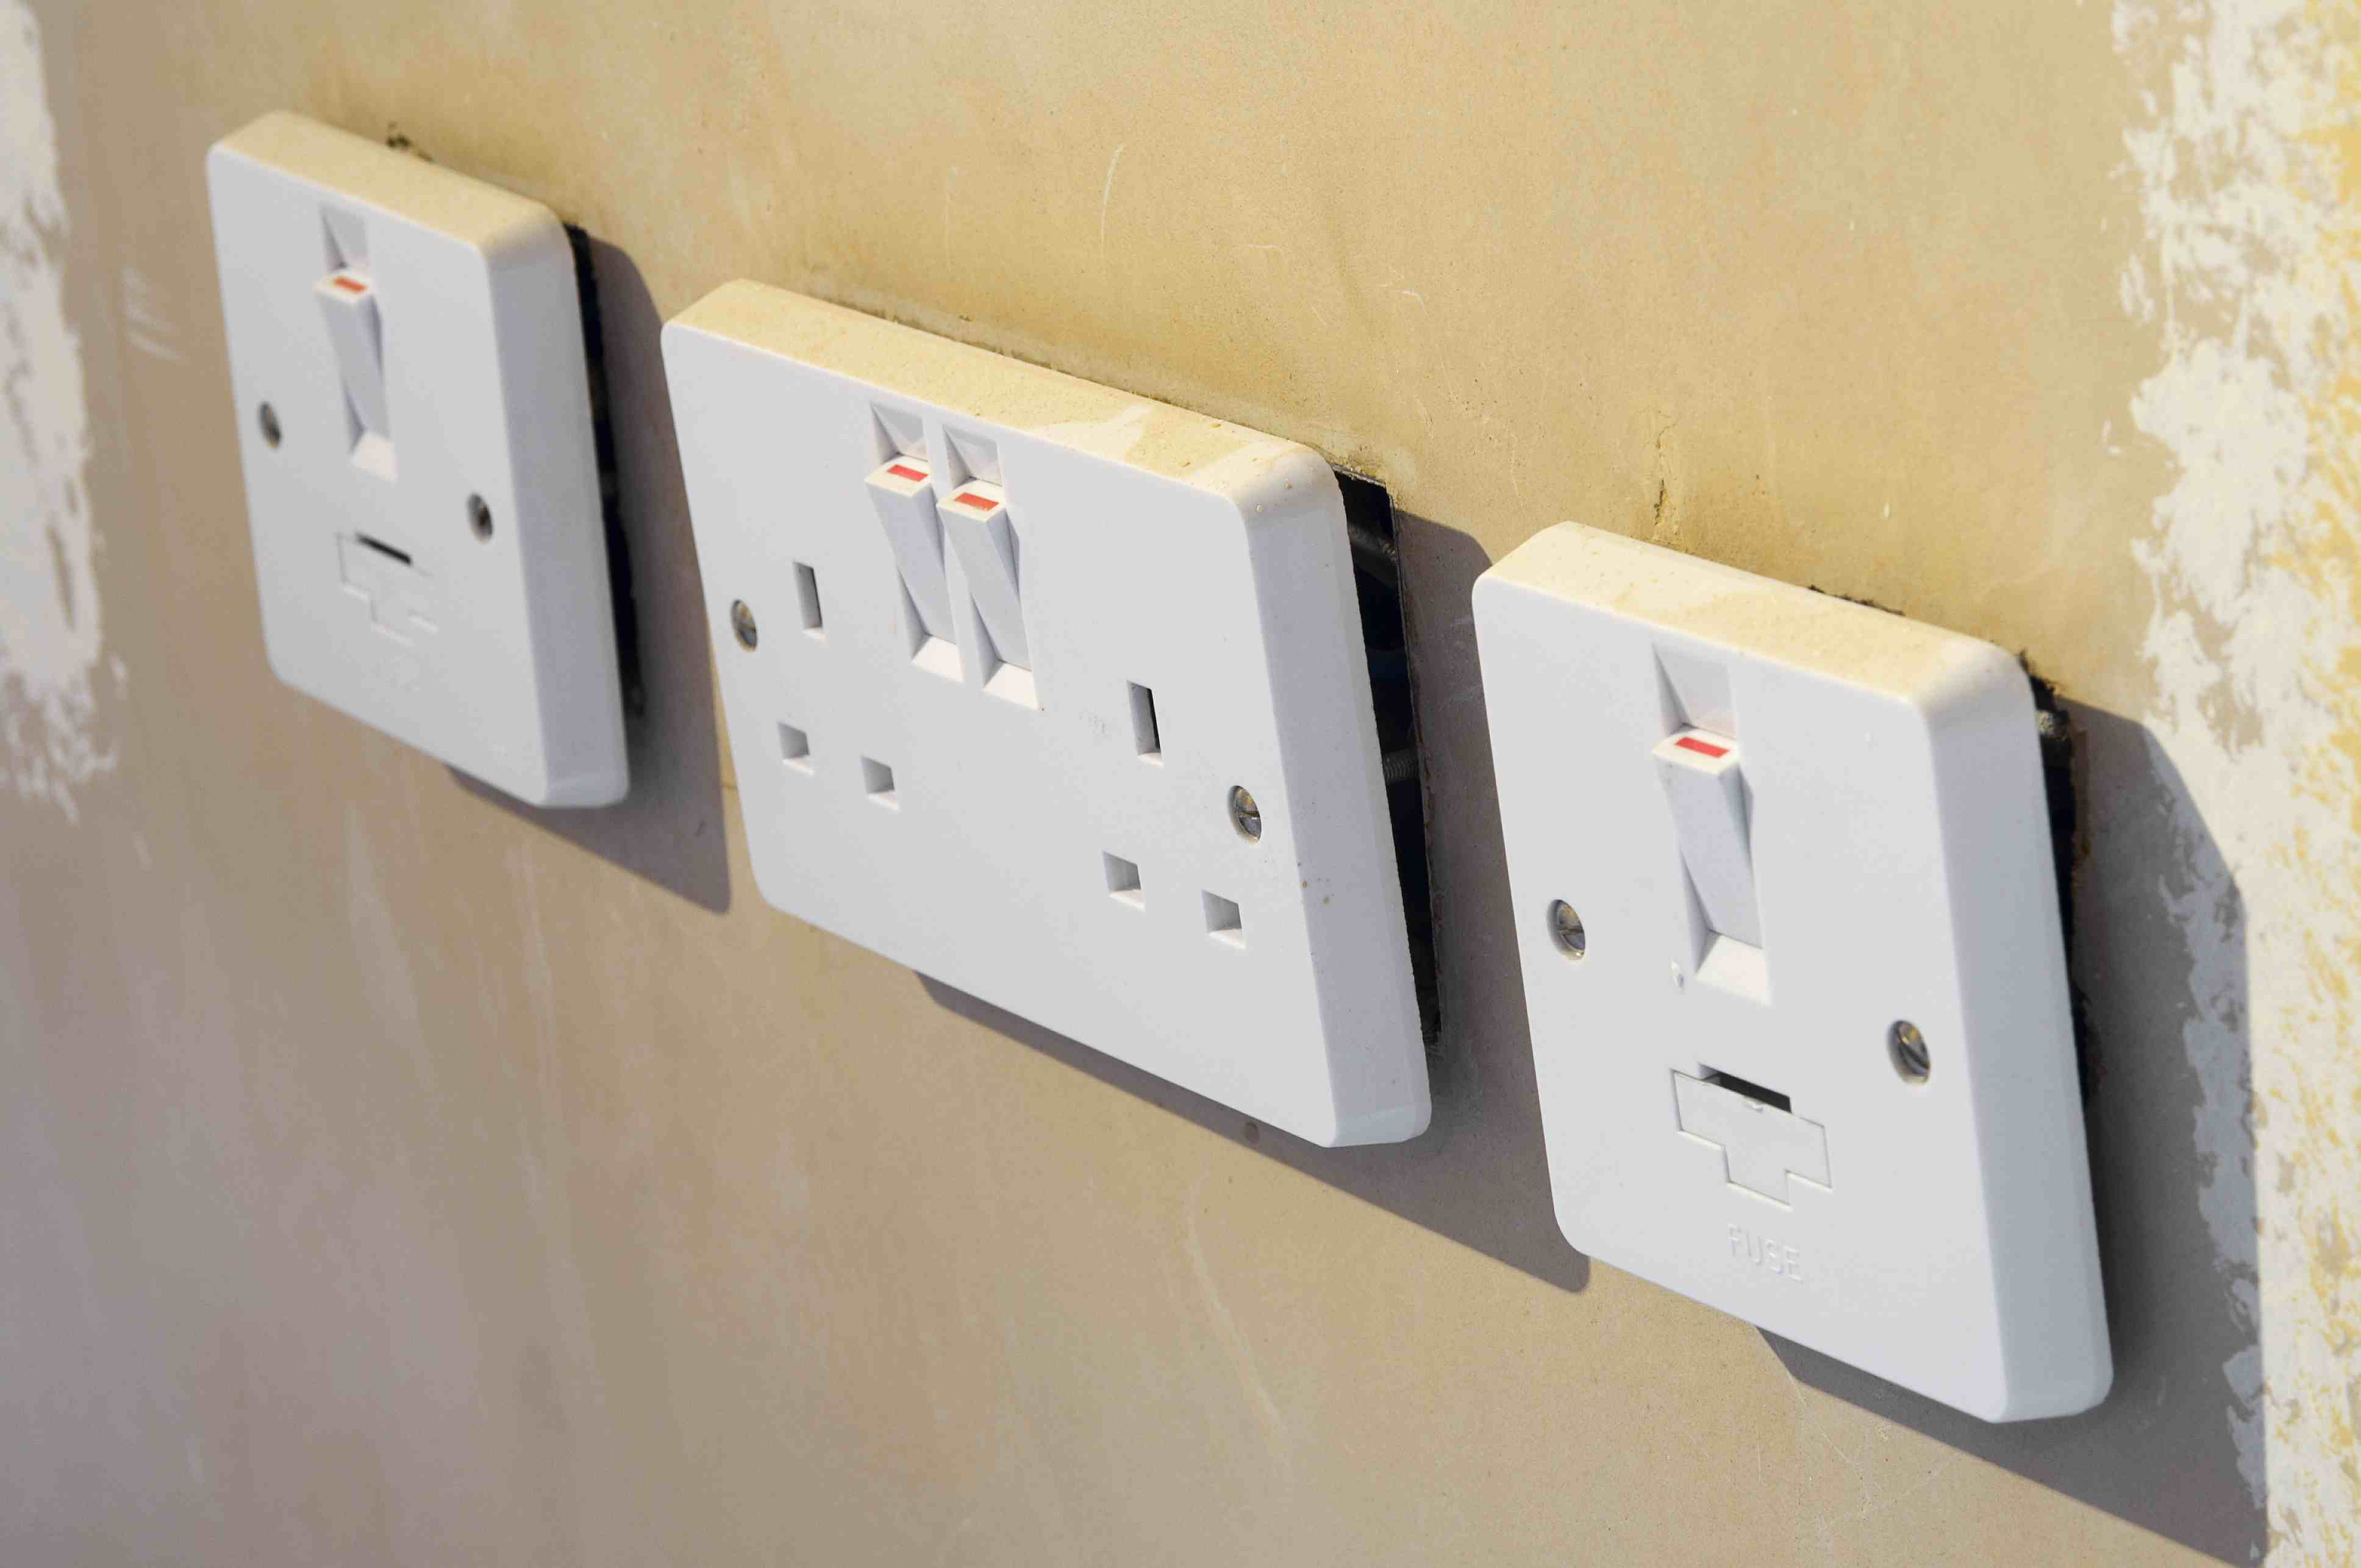 Professional Guidance On How To Hang Drywall Electrical Ss Home Center